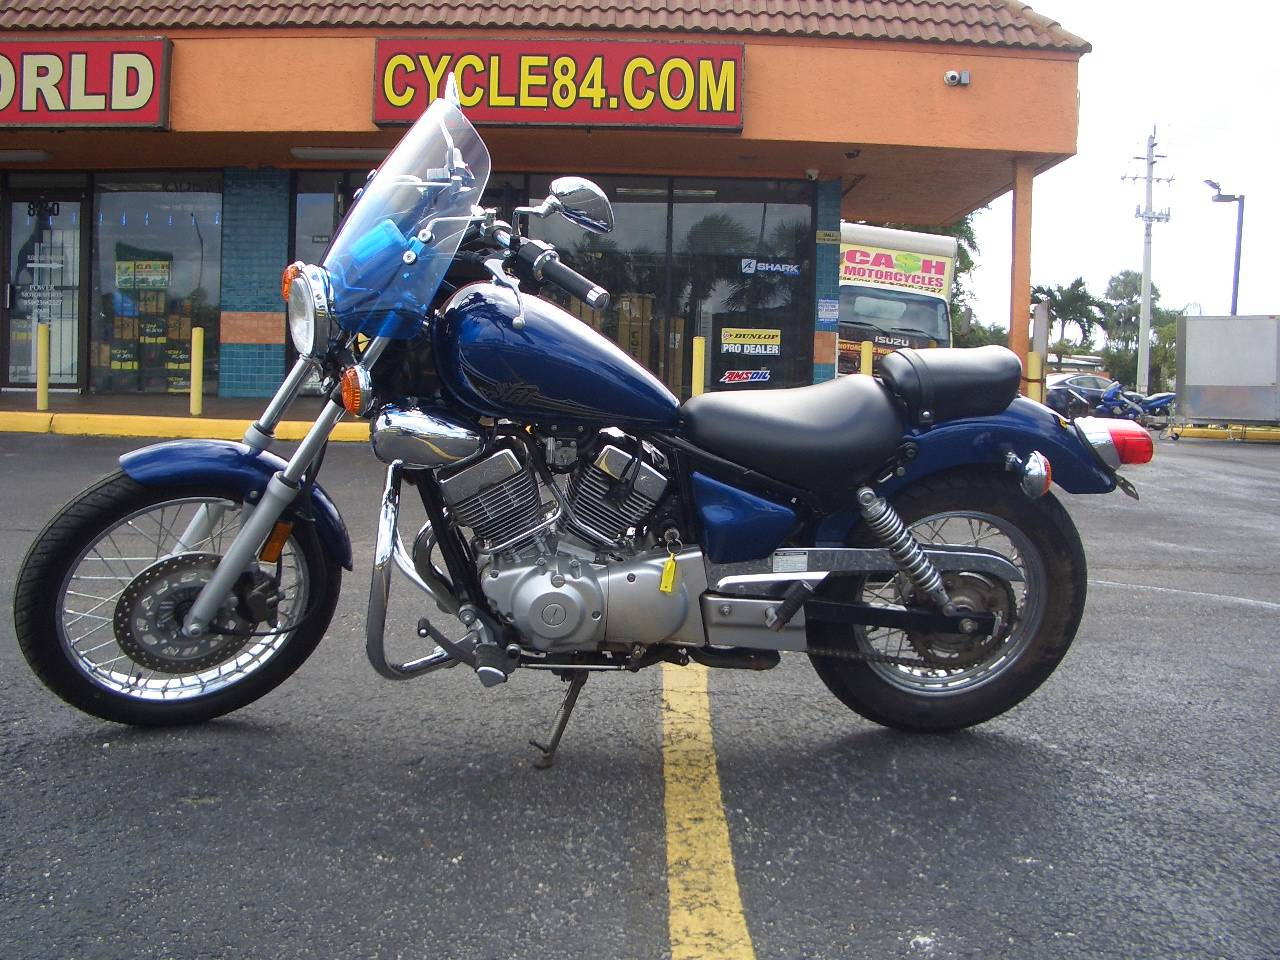 2013 Yamaha V Star 250 in Fort Lauderdale, Florida - Photo 1